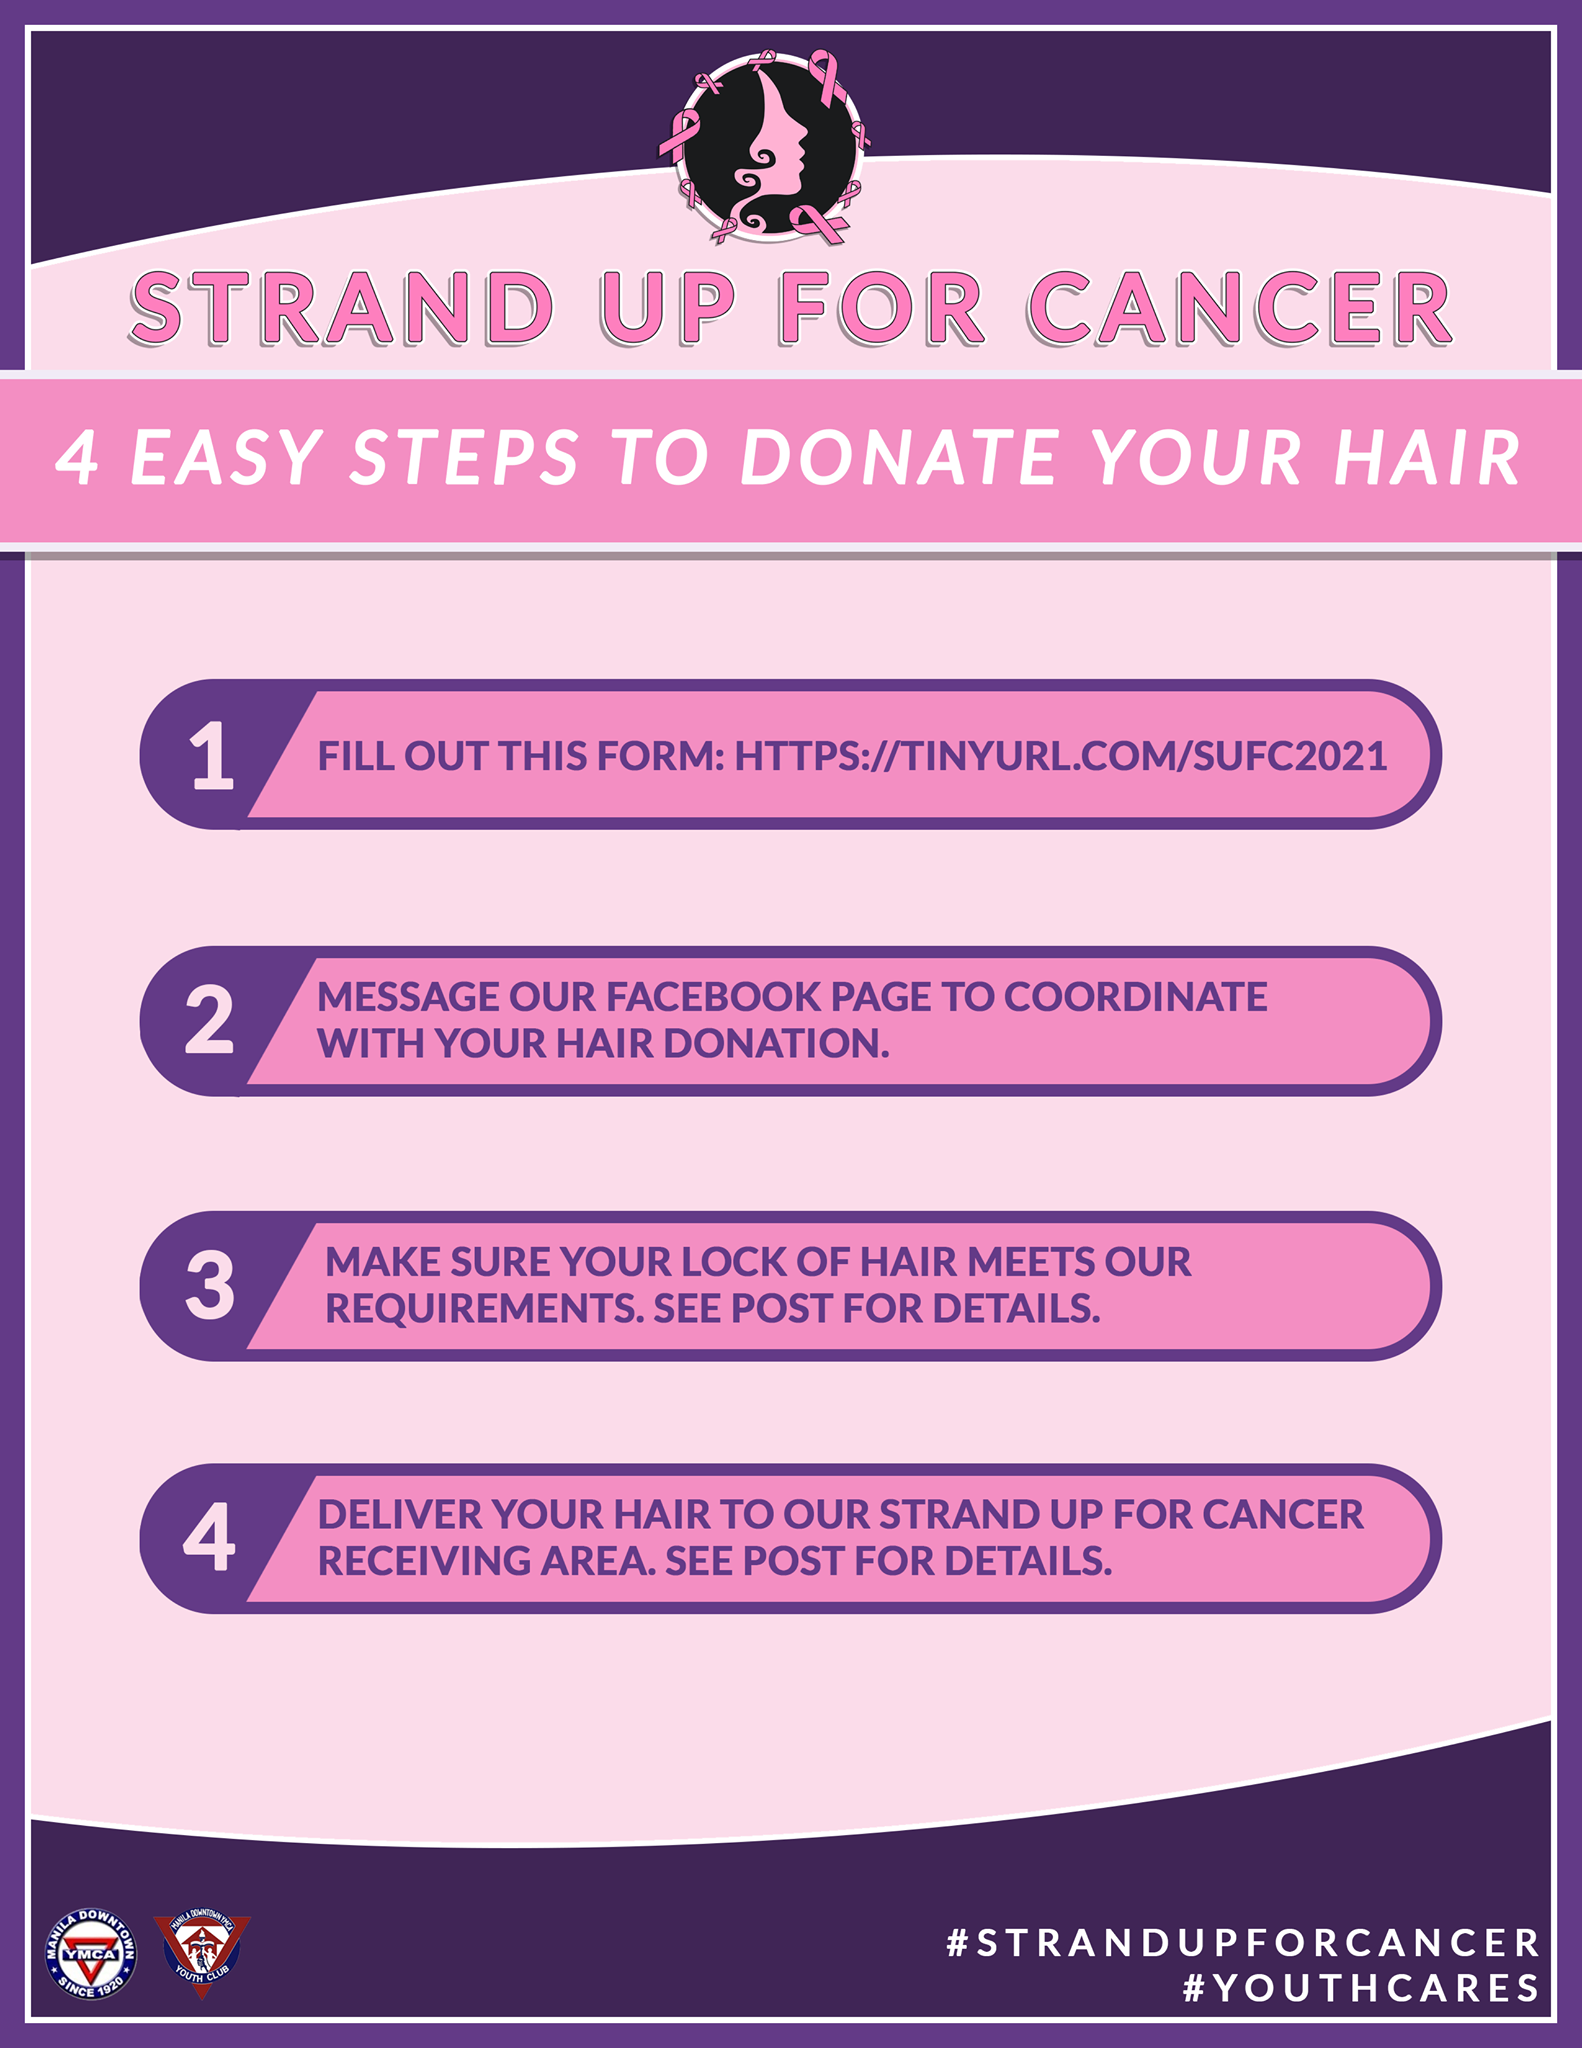 hair donation for cancer patients philippines